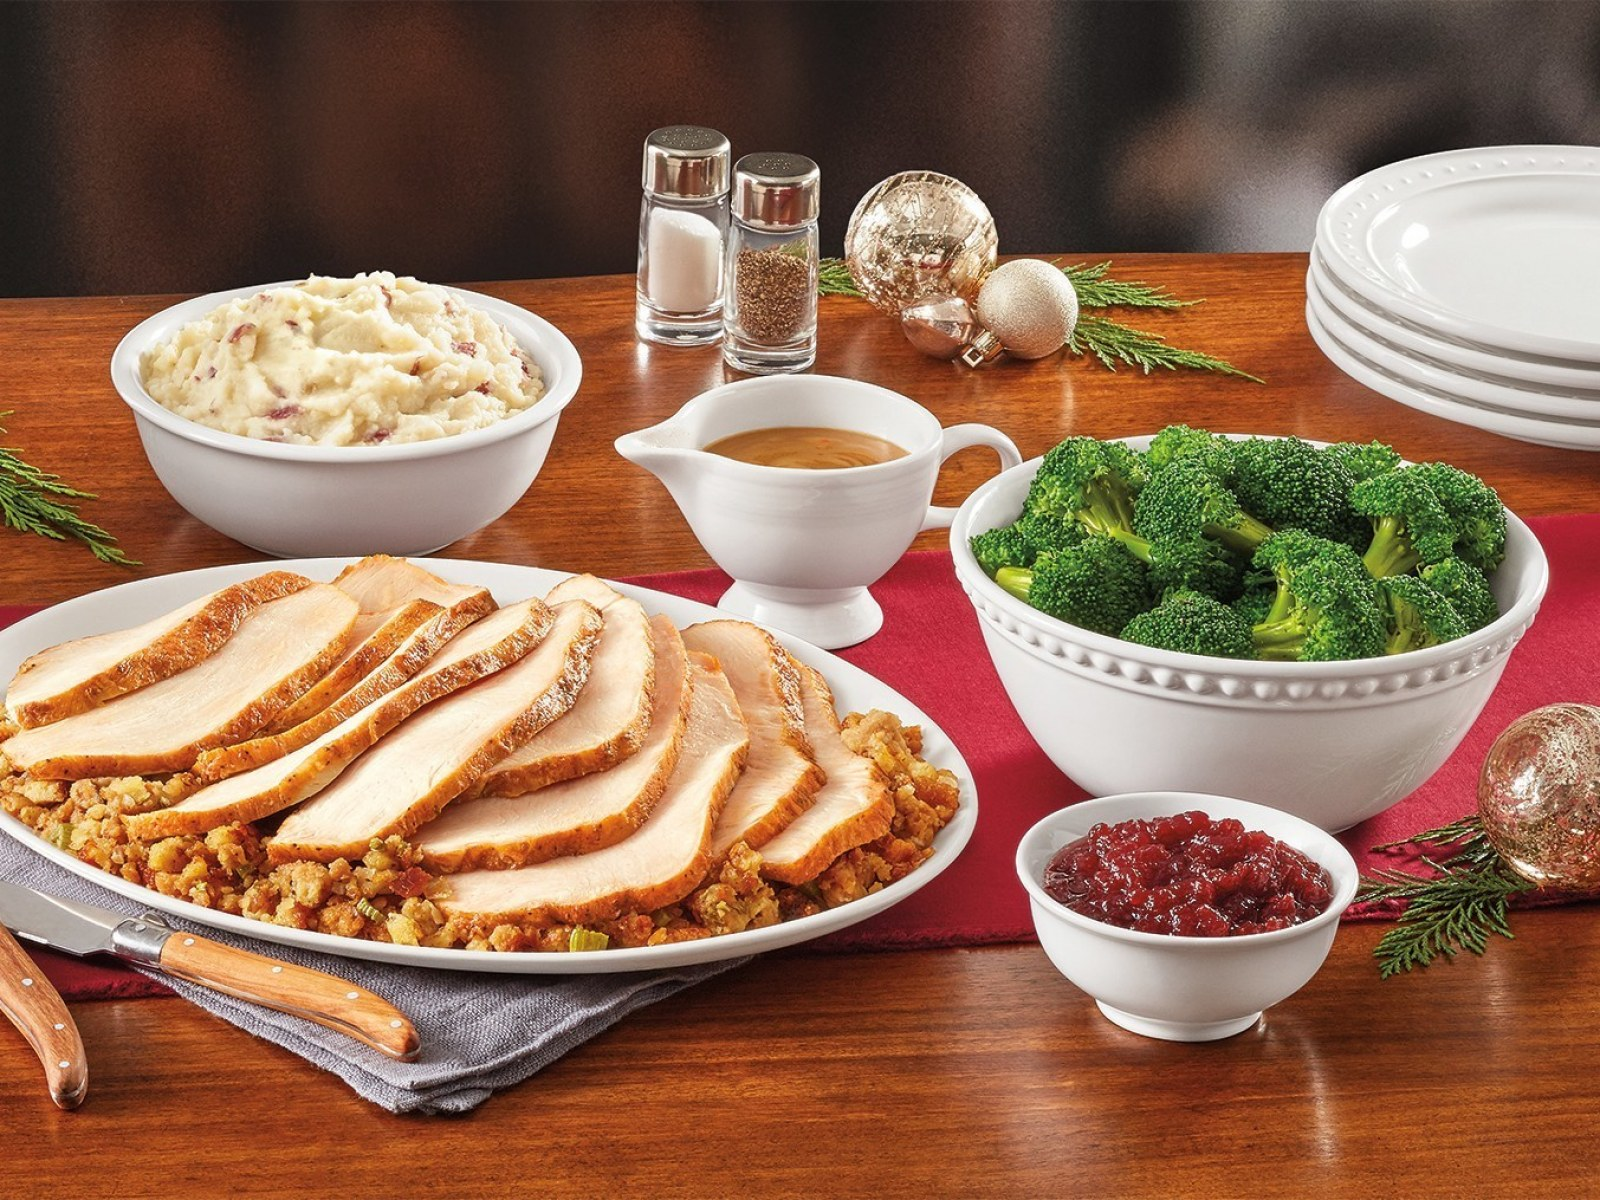 Denny S Launches Turkey And Dressing Dinner Pack For A Stress Free Thanksgiving